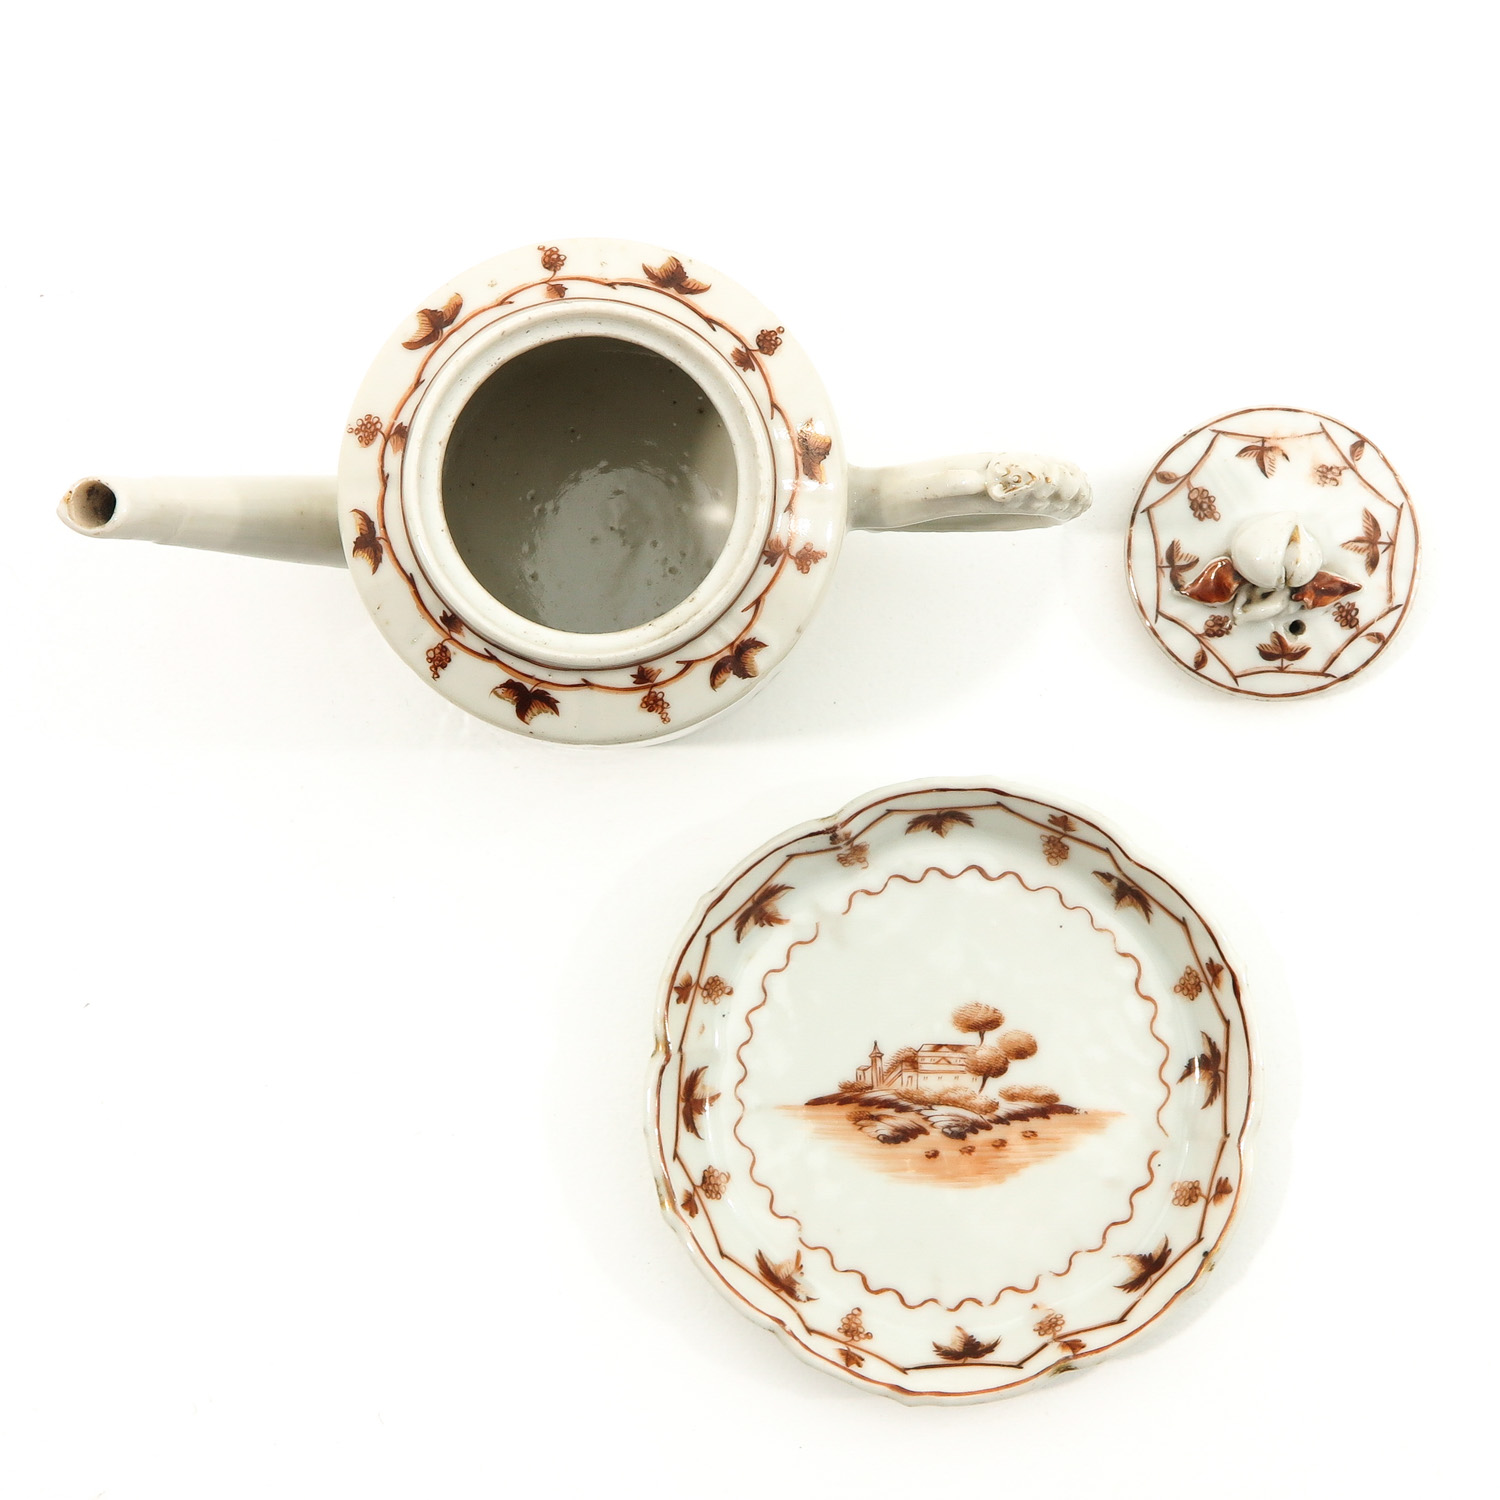 A Teapot and Small Dish - Image 5 of 9